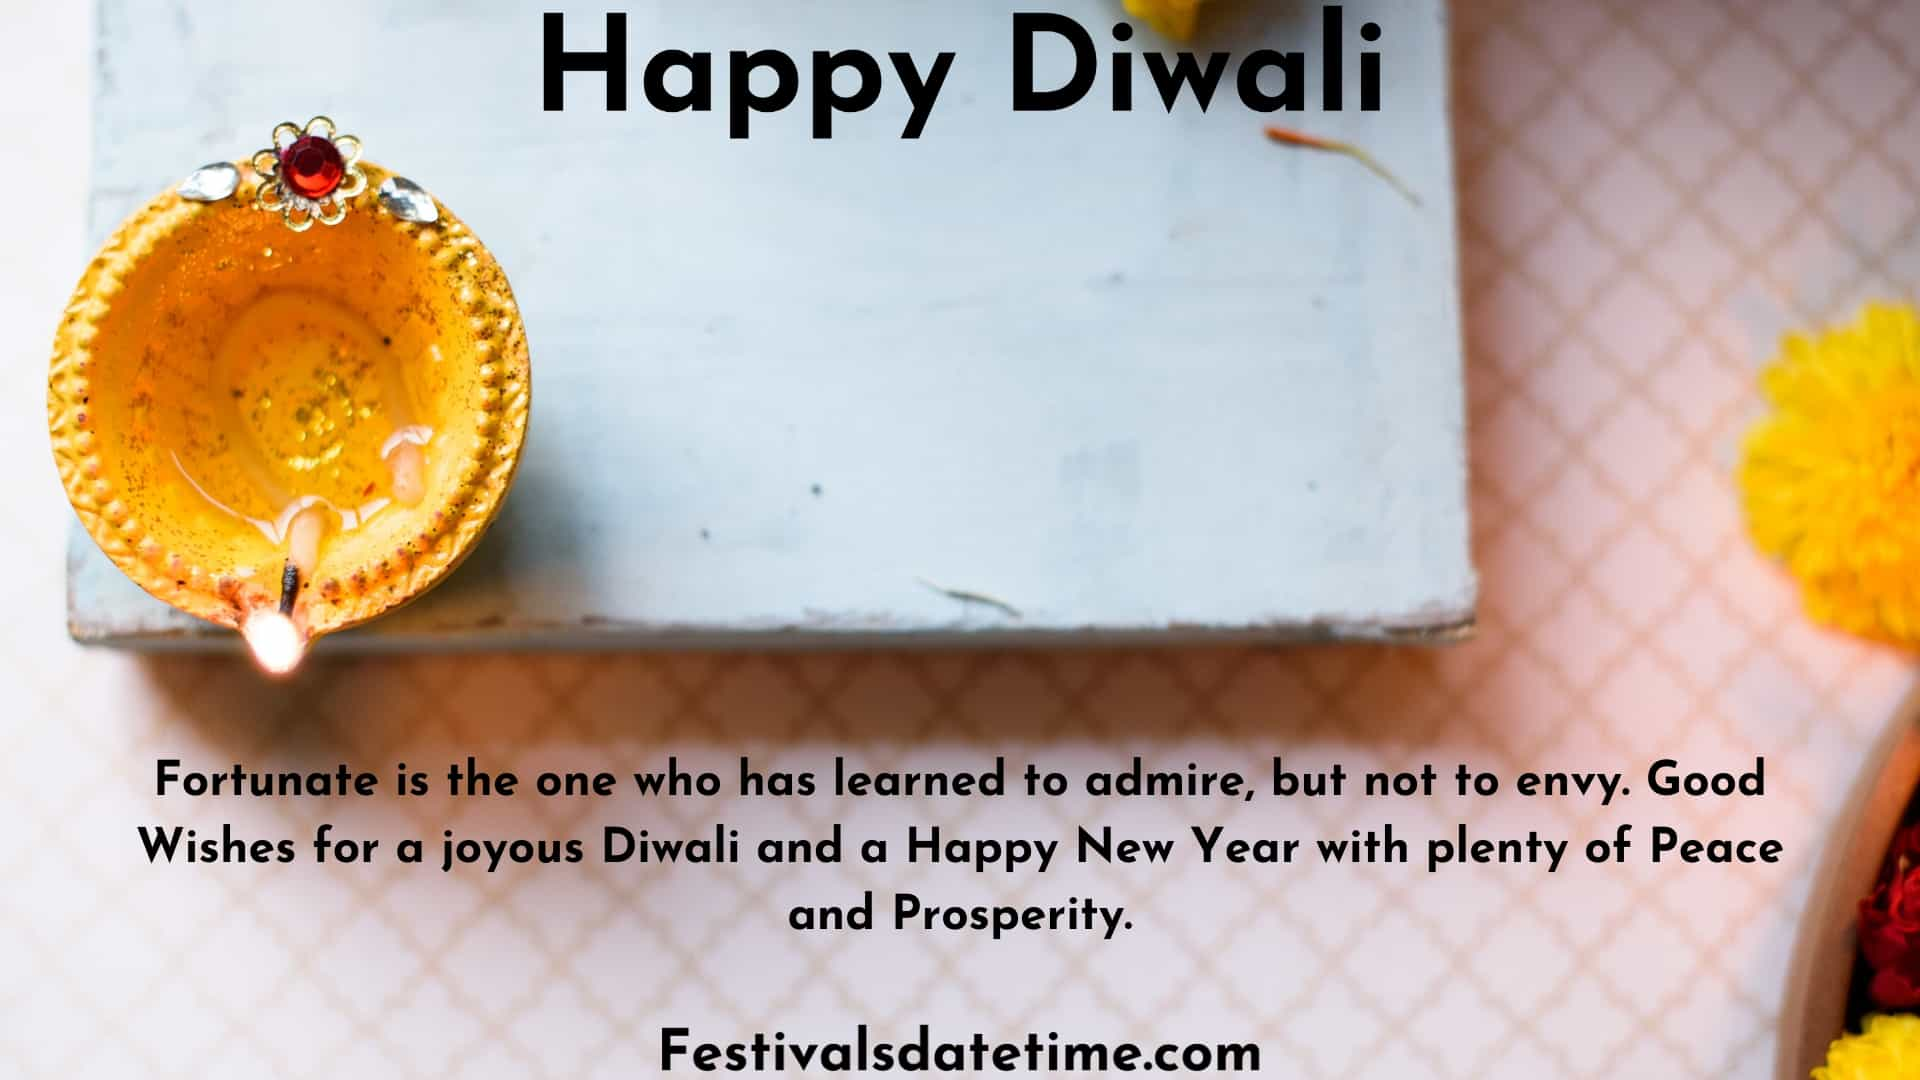 quotes_for_diwali_in_english